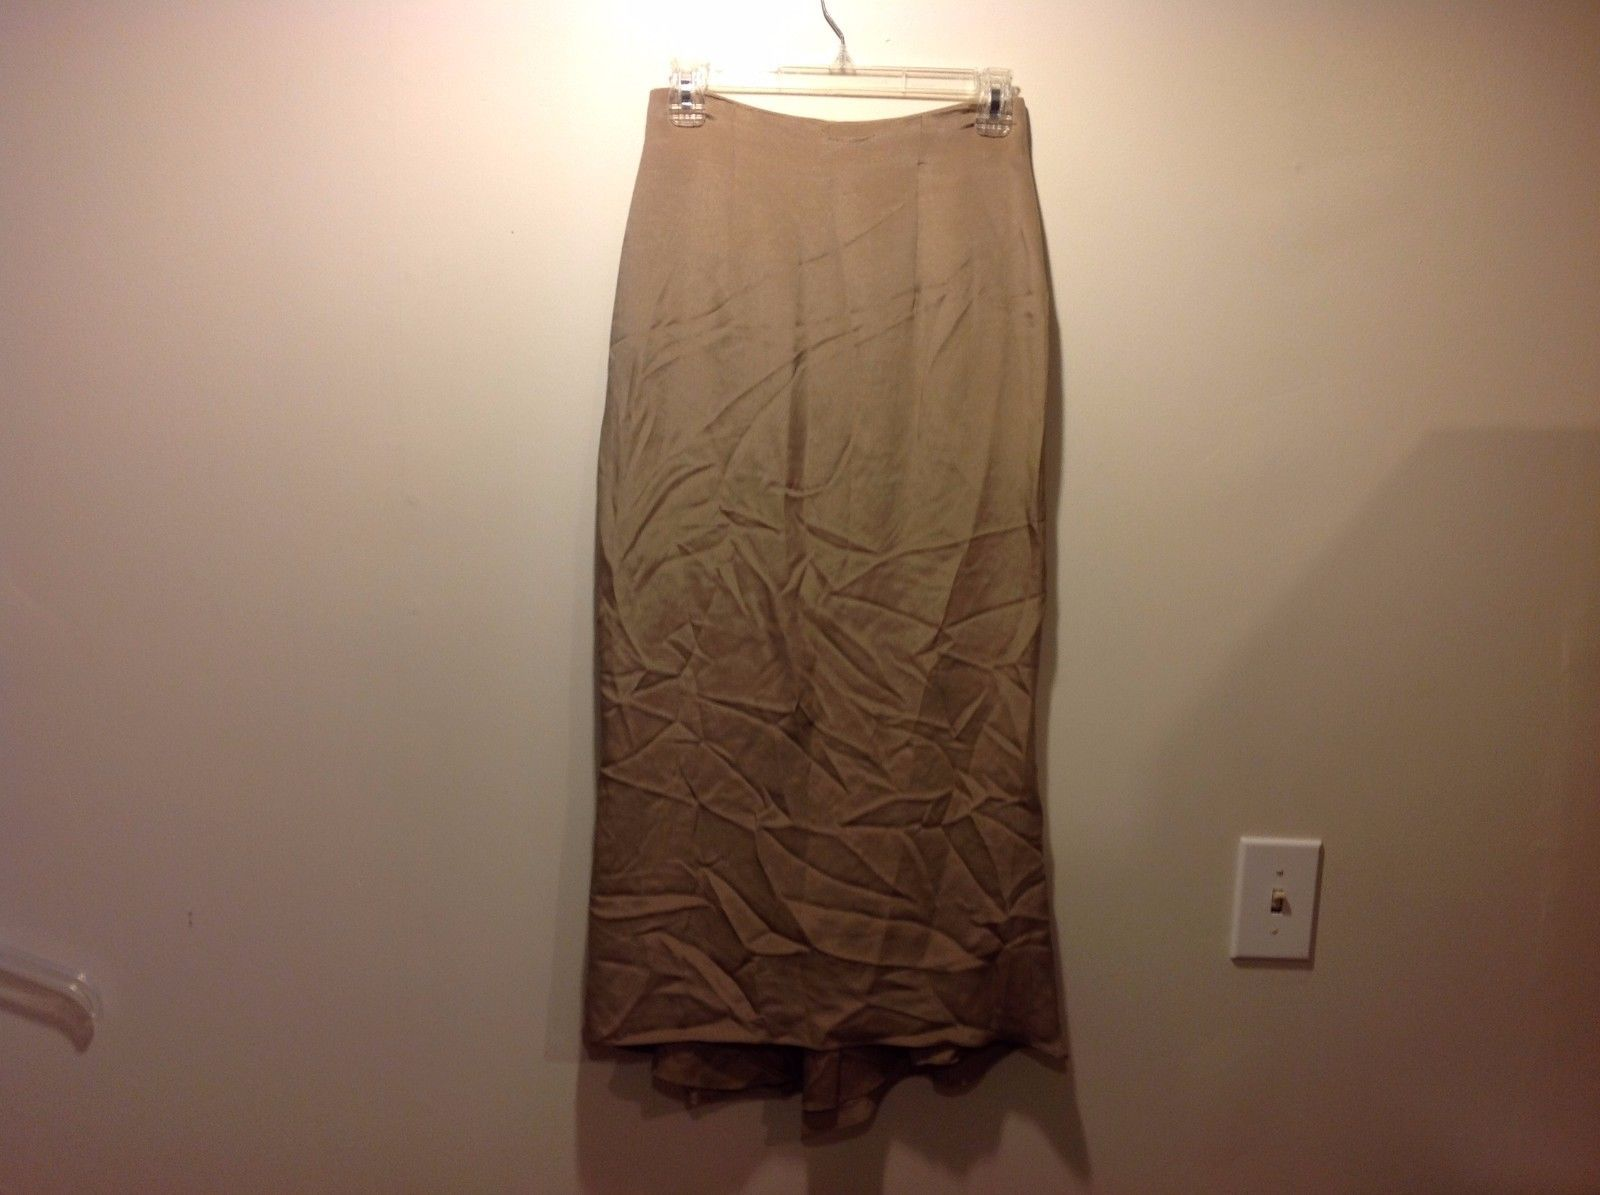 VIE by Victoria Royal 100% Silk Flowy Golden Long Skirt Sz 2P